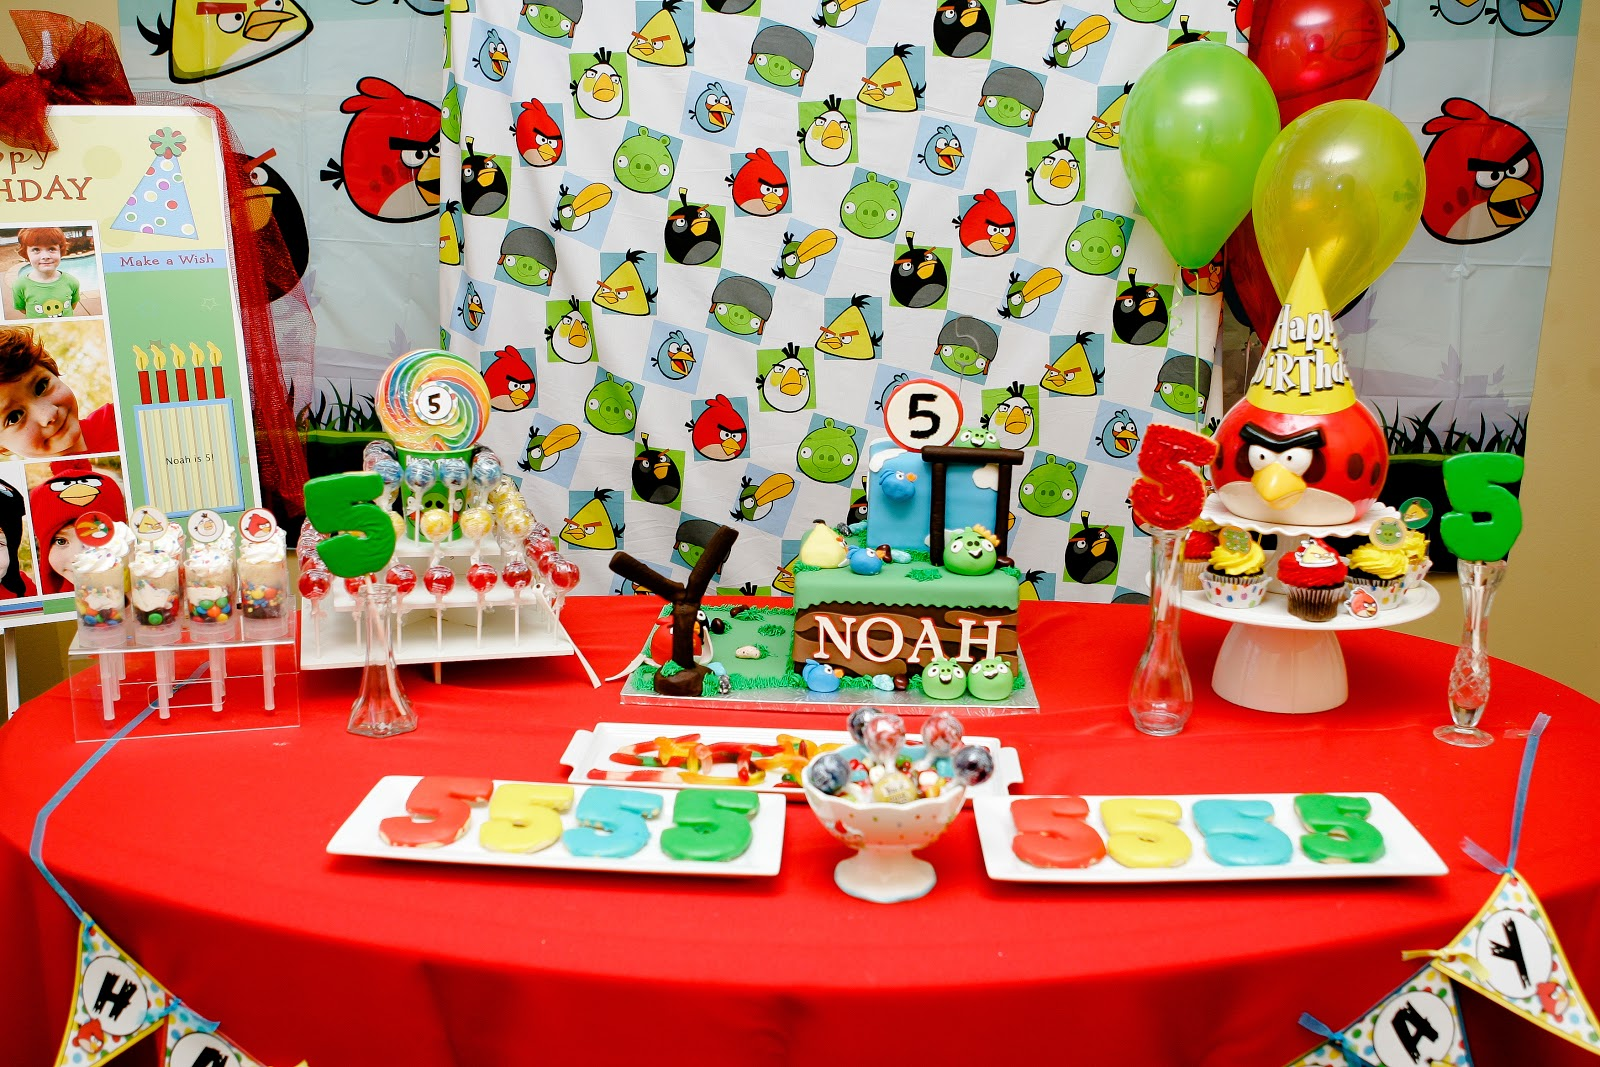 Choosing joy today angry bird party decorations for Angry birds party decoration ideas